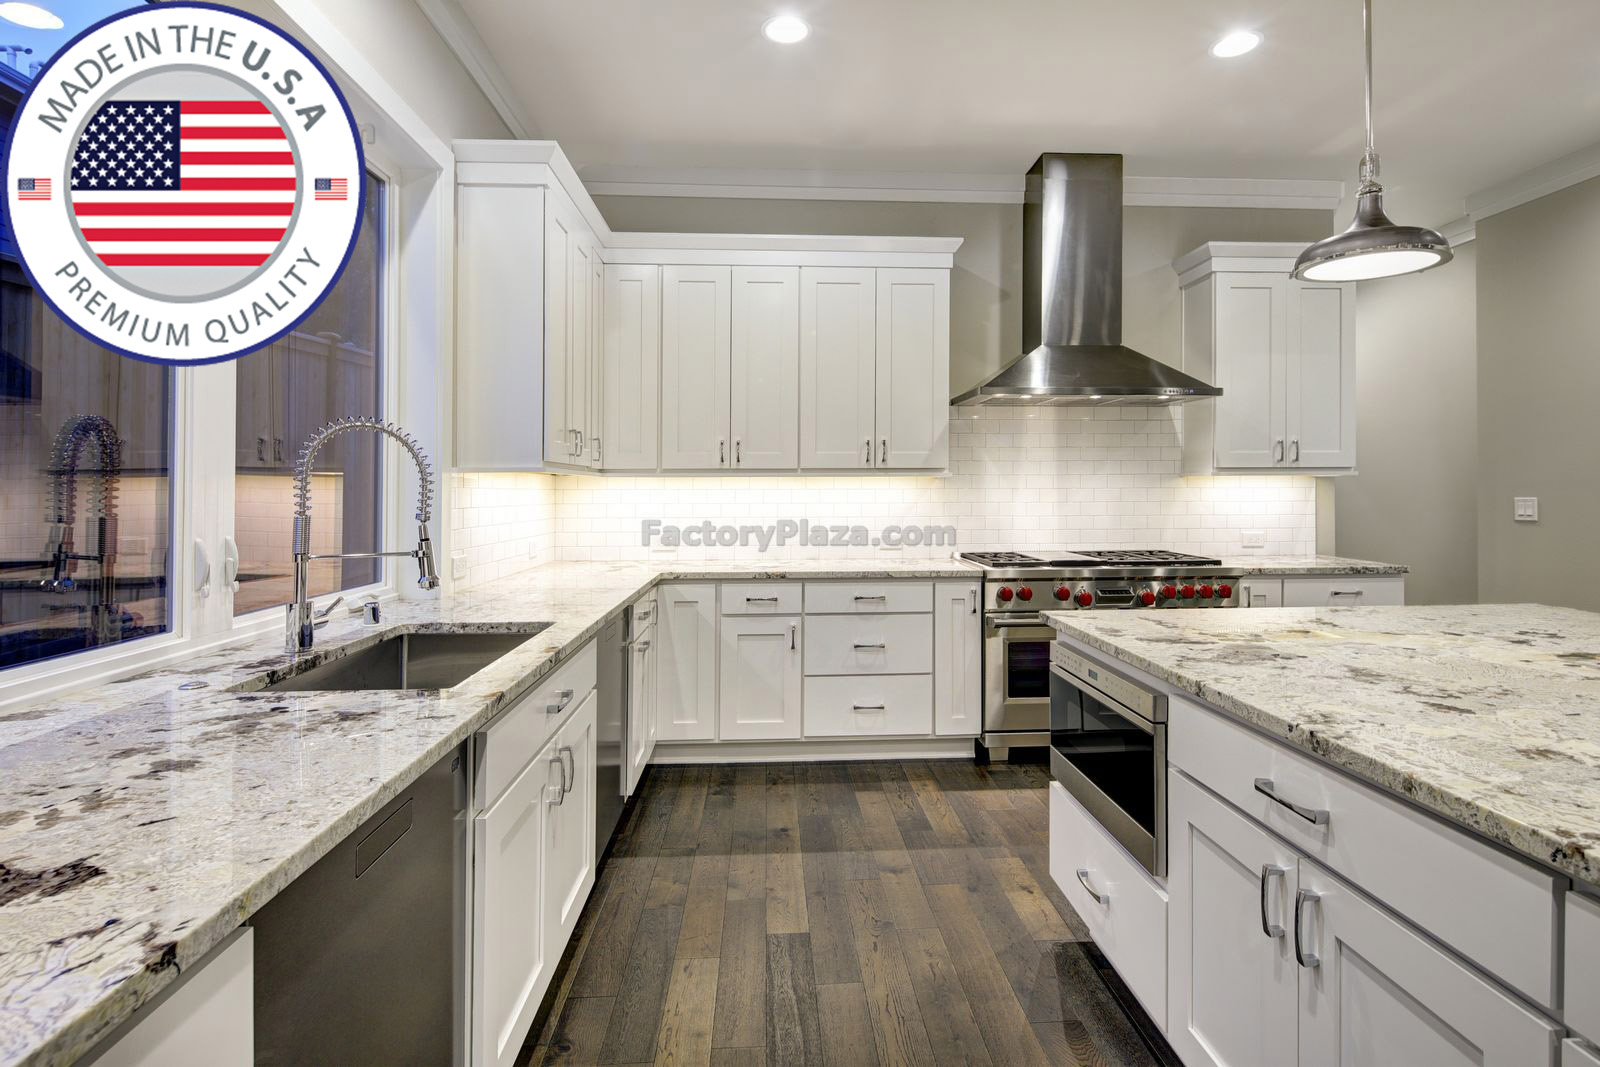 Large spacious kitchen design with white kitchen cabinets white kitchen island with lots of storage white Granite countertops subway tiles and stainless steel appliances. Northwest USA . Northwest USA